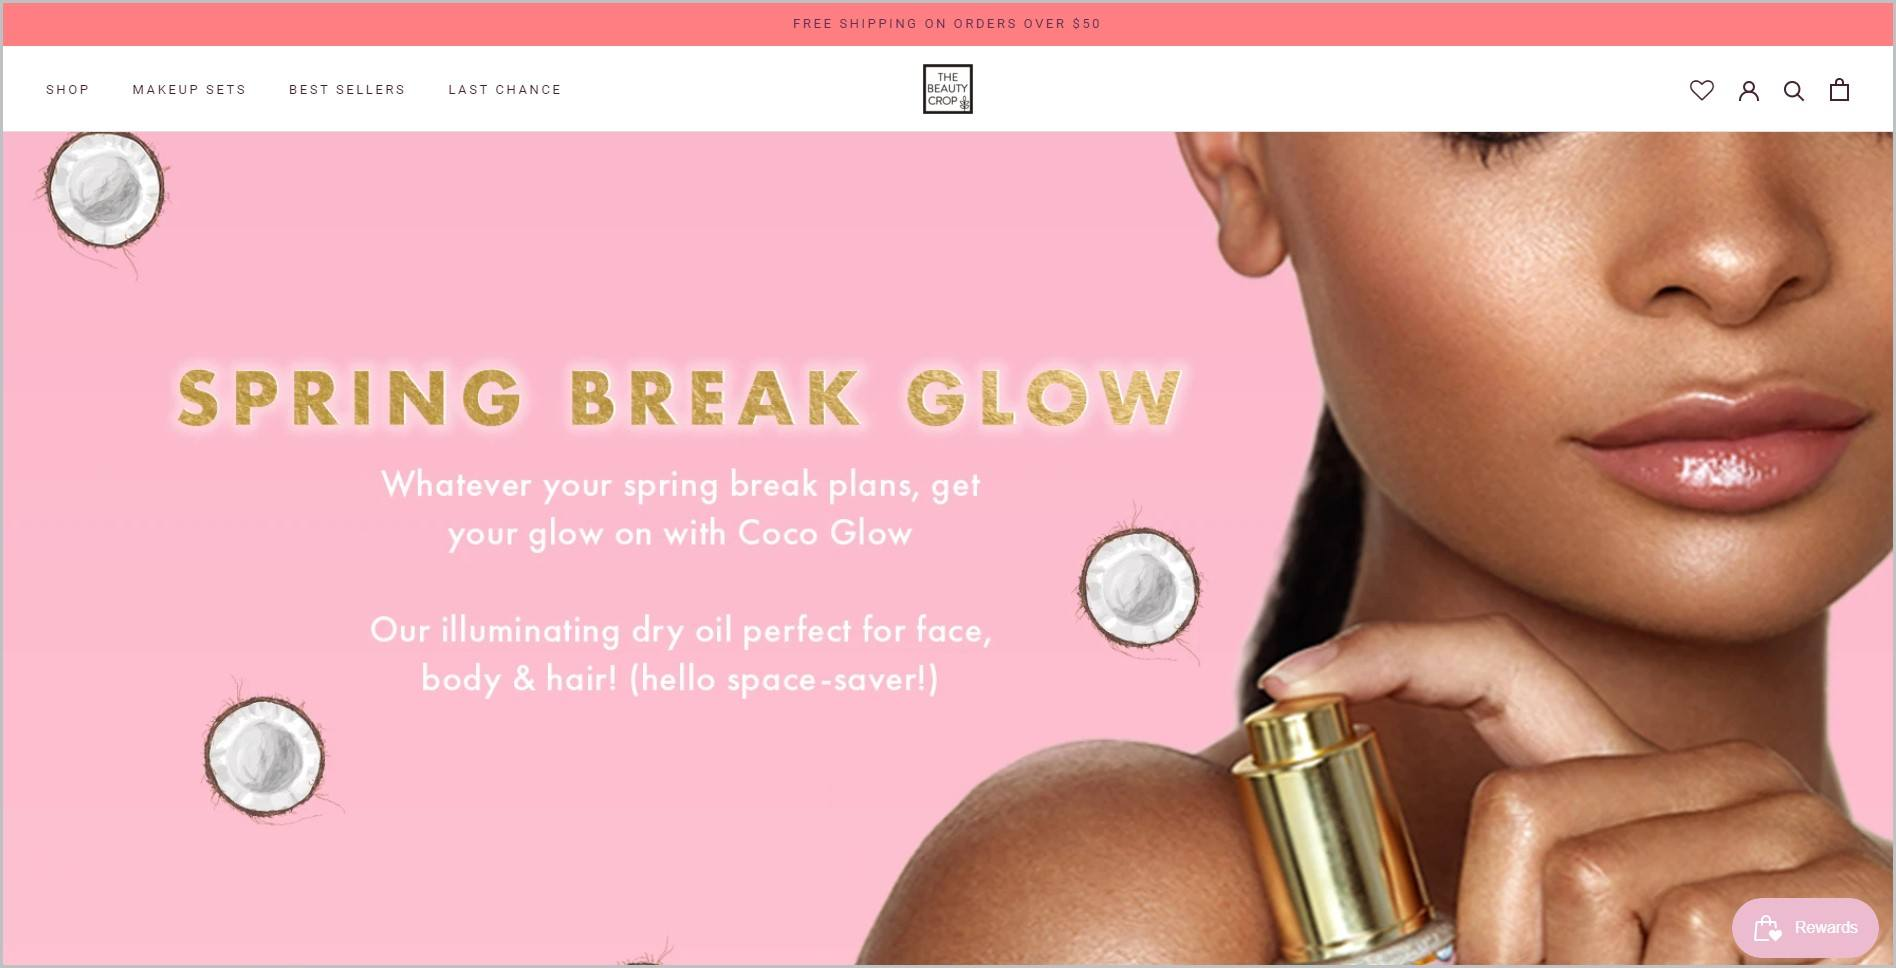 screenshot of The Beauty Crop homepage, with coral announcement bar, white header with the website's name and main navigation menu, it showcases a black woman model holding a skincare product